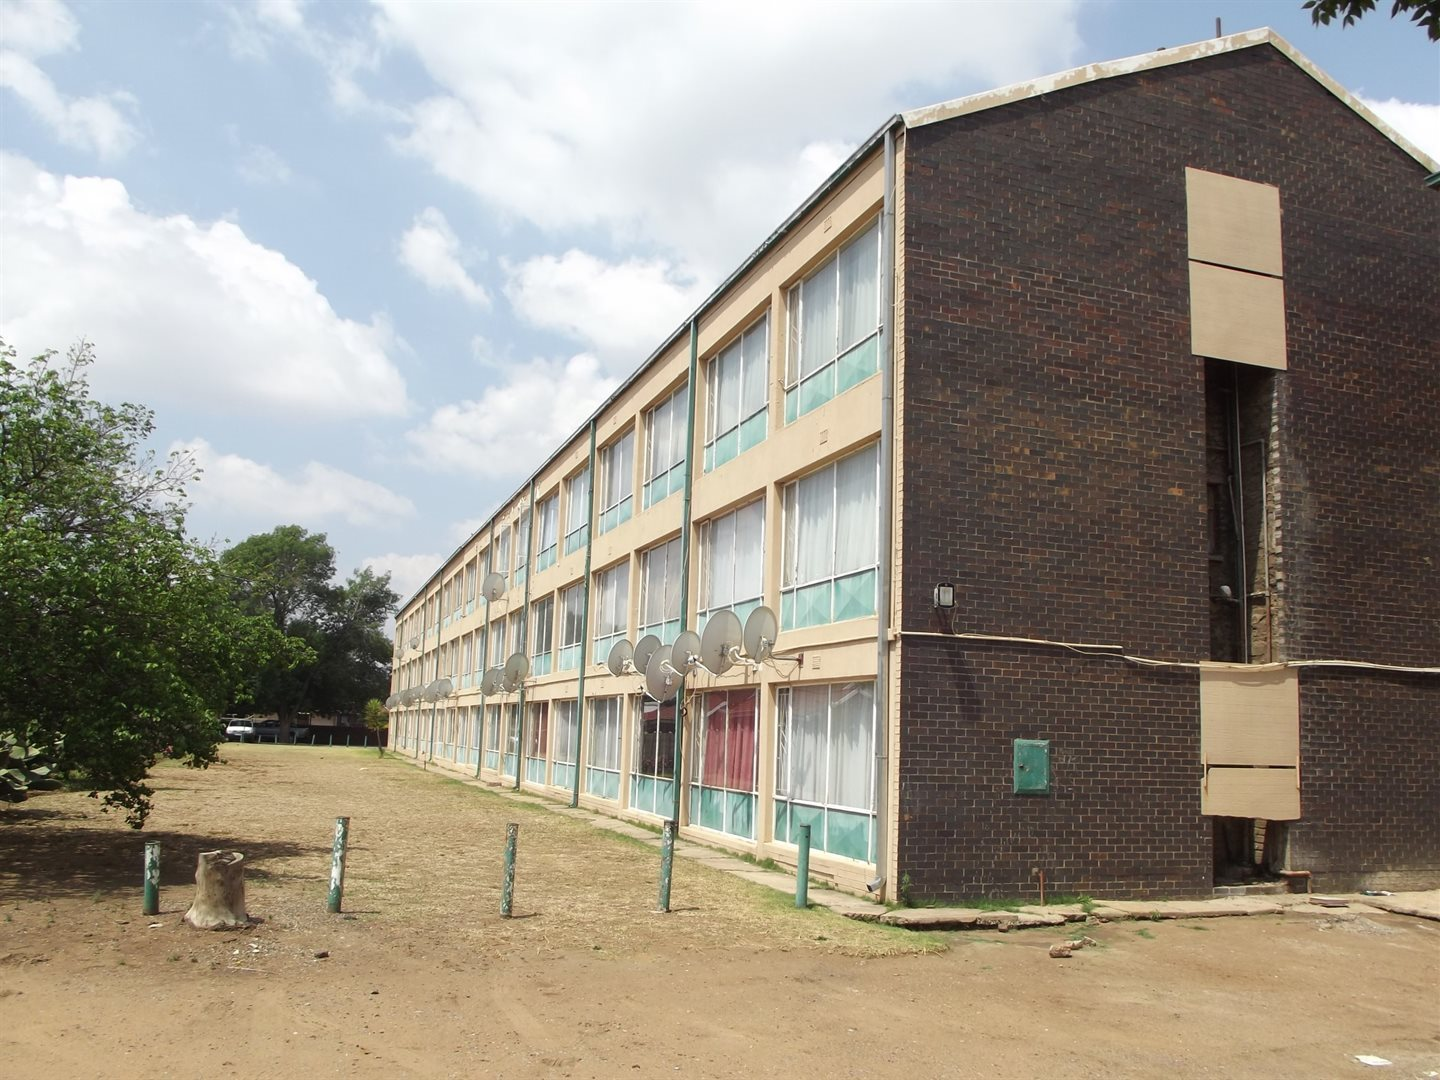 Property and Houses for sale in Gauteng - Page 1631, Apartment, 2 Bedrooms - ZAR 398,000